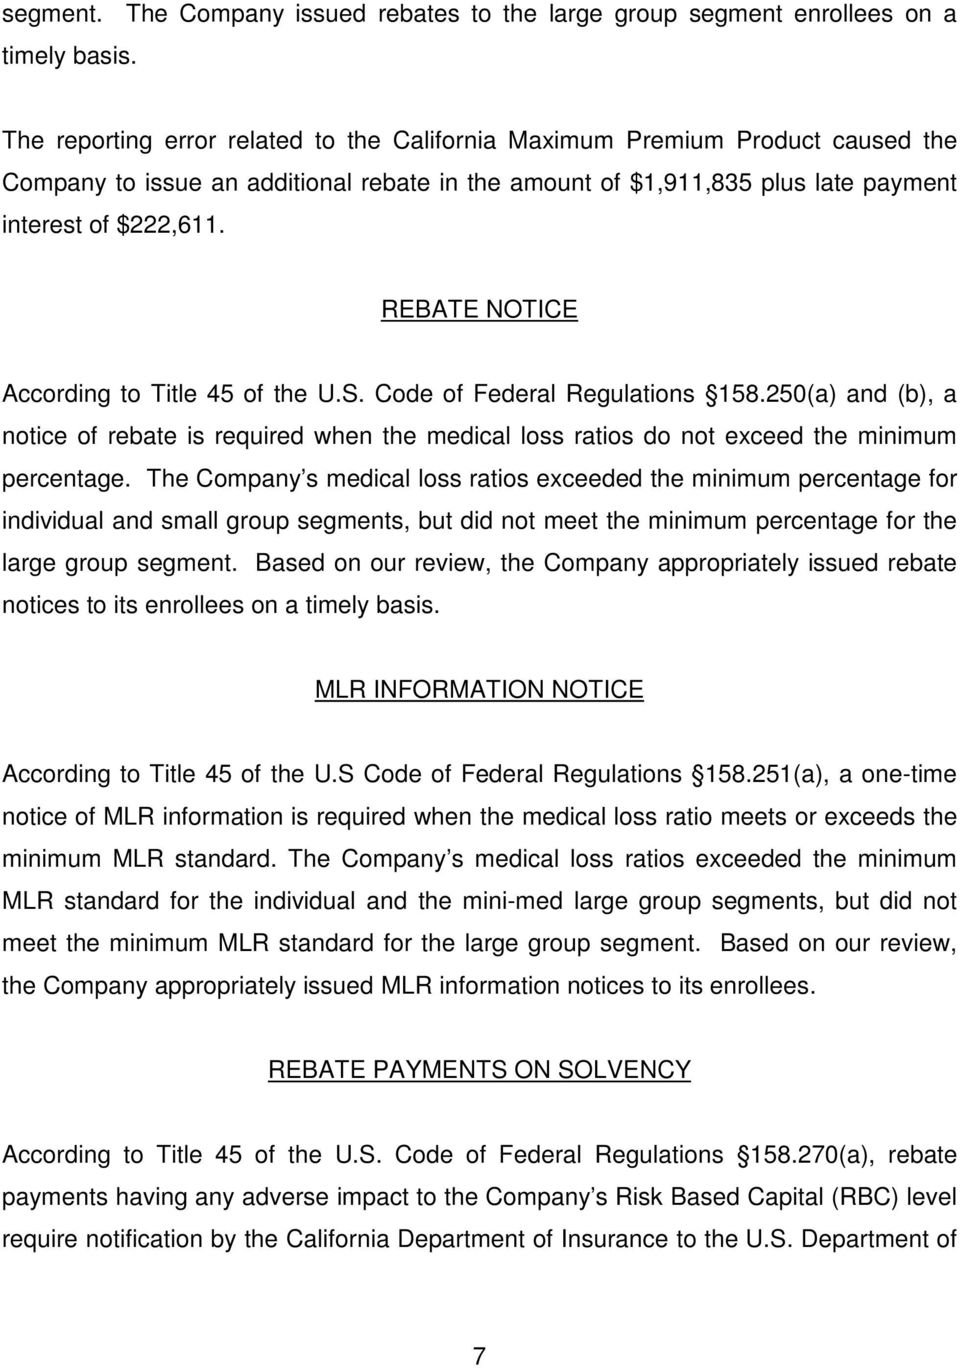 REBATE NOTICE According to Title 45 of the U.S. Code of Federal Regulations 158.250(a) and (b), a notice of rebate is required when the medical loss ratios do not exceed the minimum percentage.